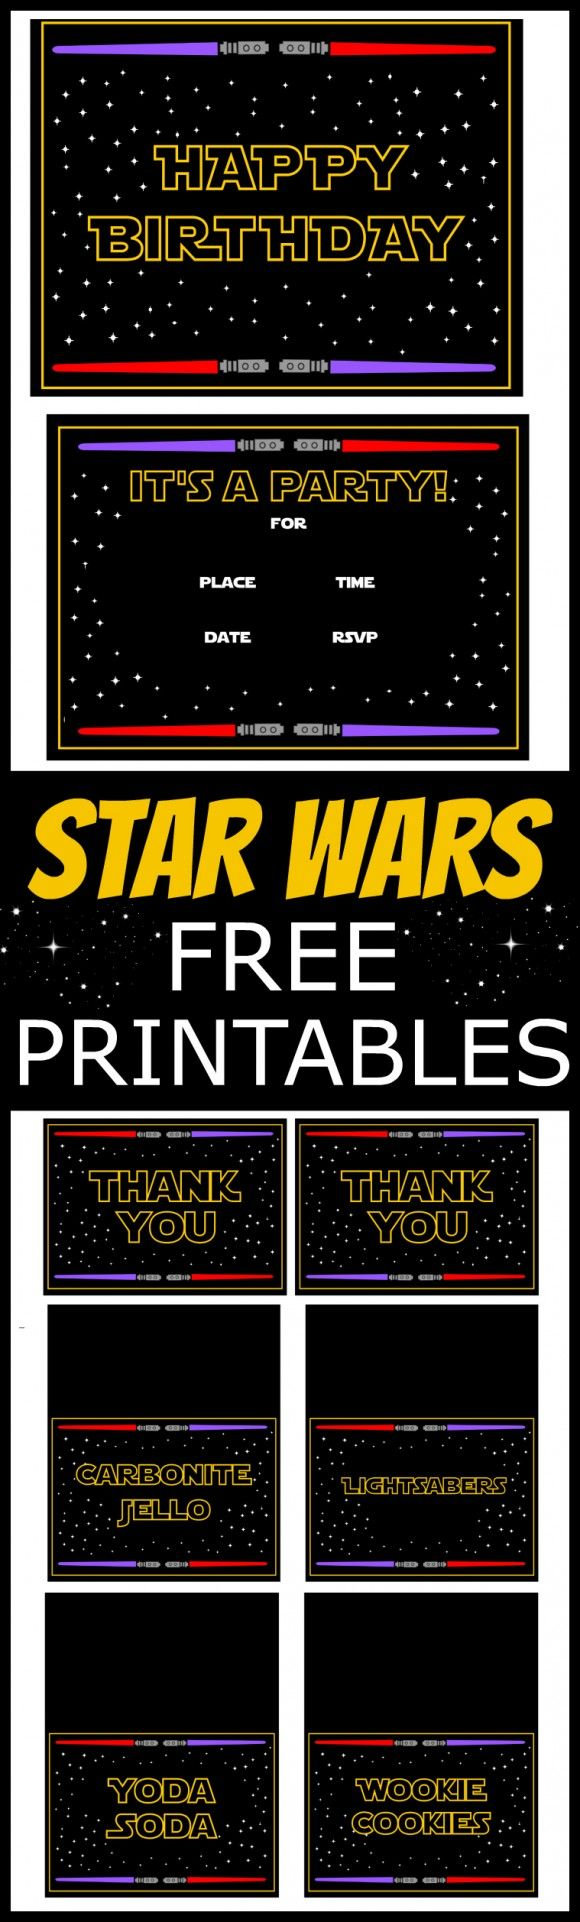 Star Wars themed free birthday party printables